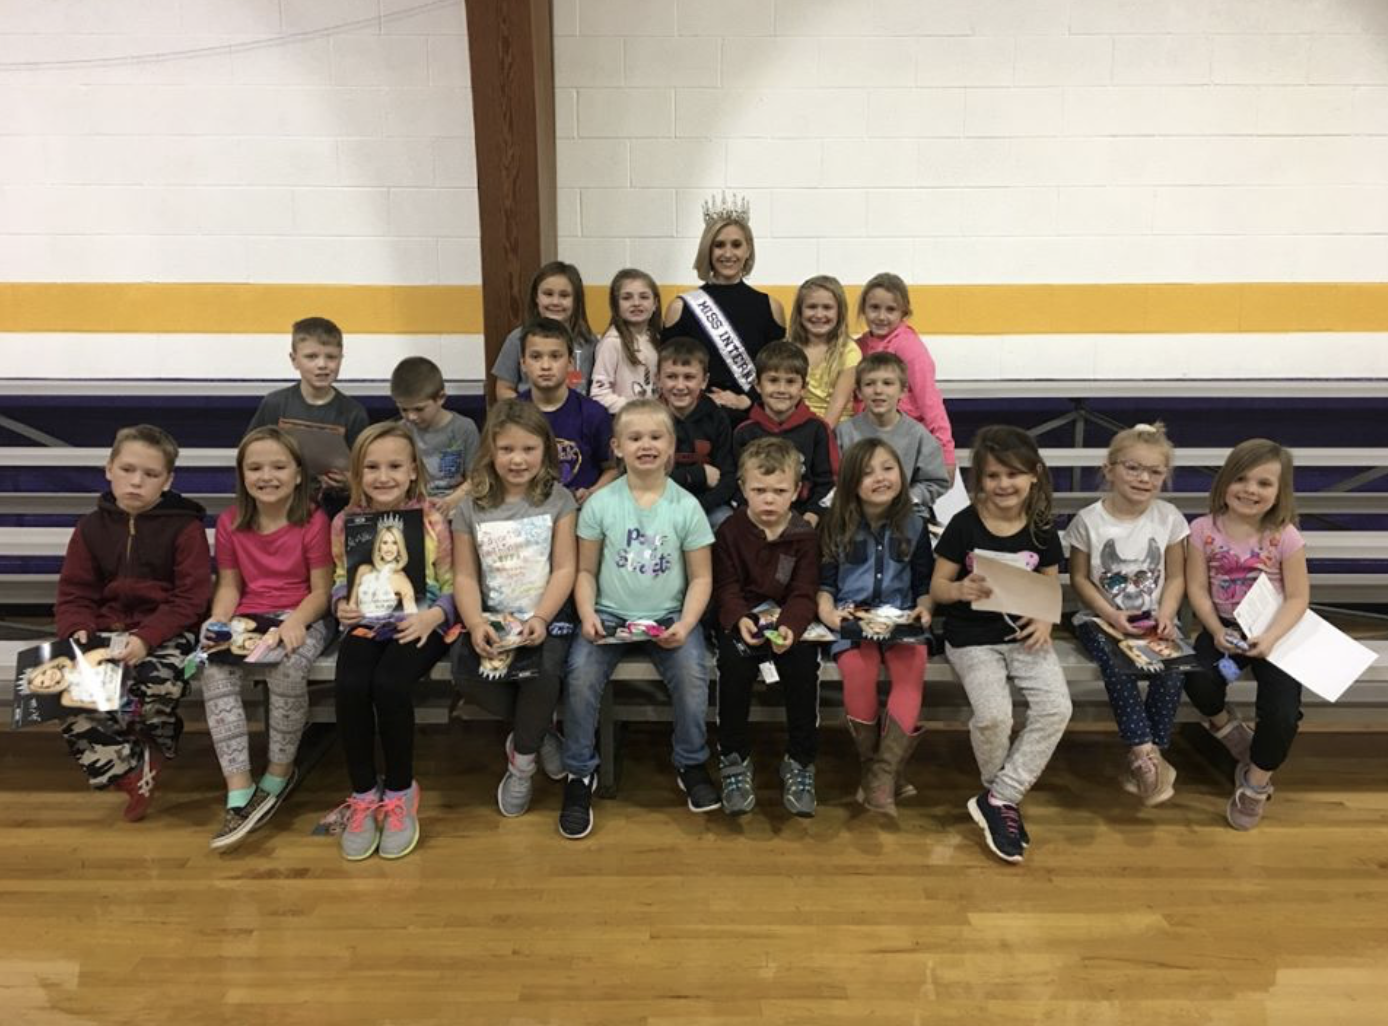 Presenting Hearts for Hope to Kulm Pubic School grades k-12. I spent the whole day sharing the mission of The Peyton Heart Project and making hearts.